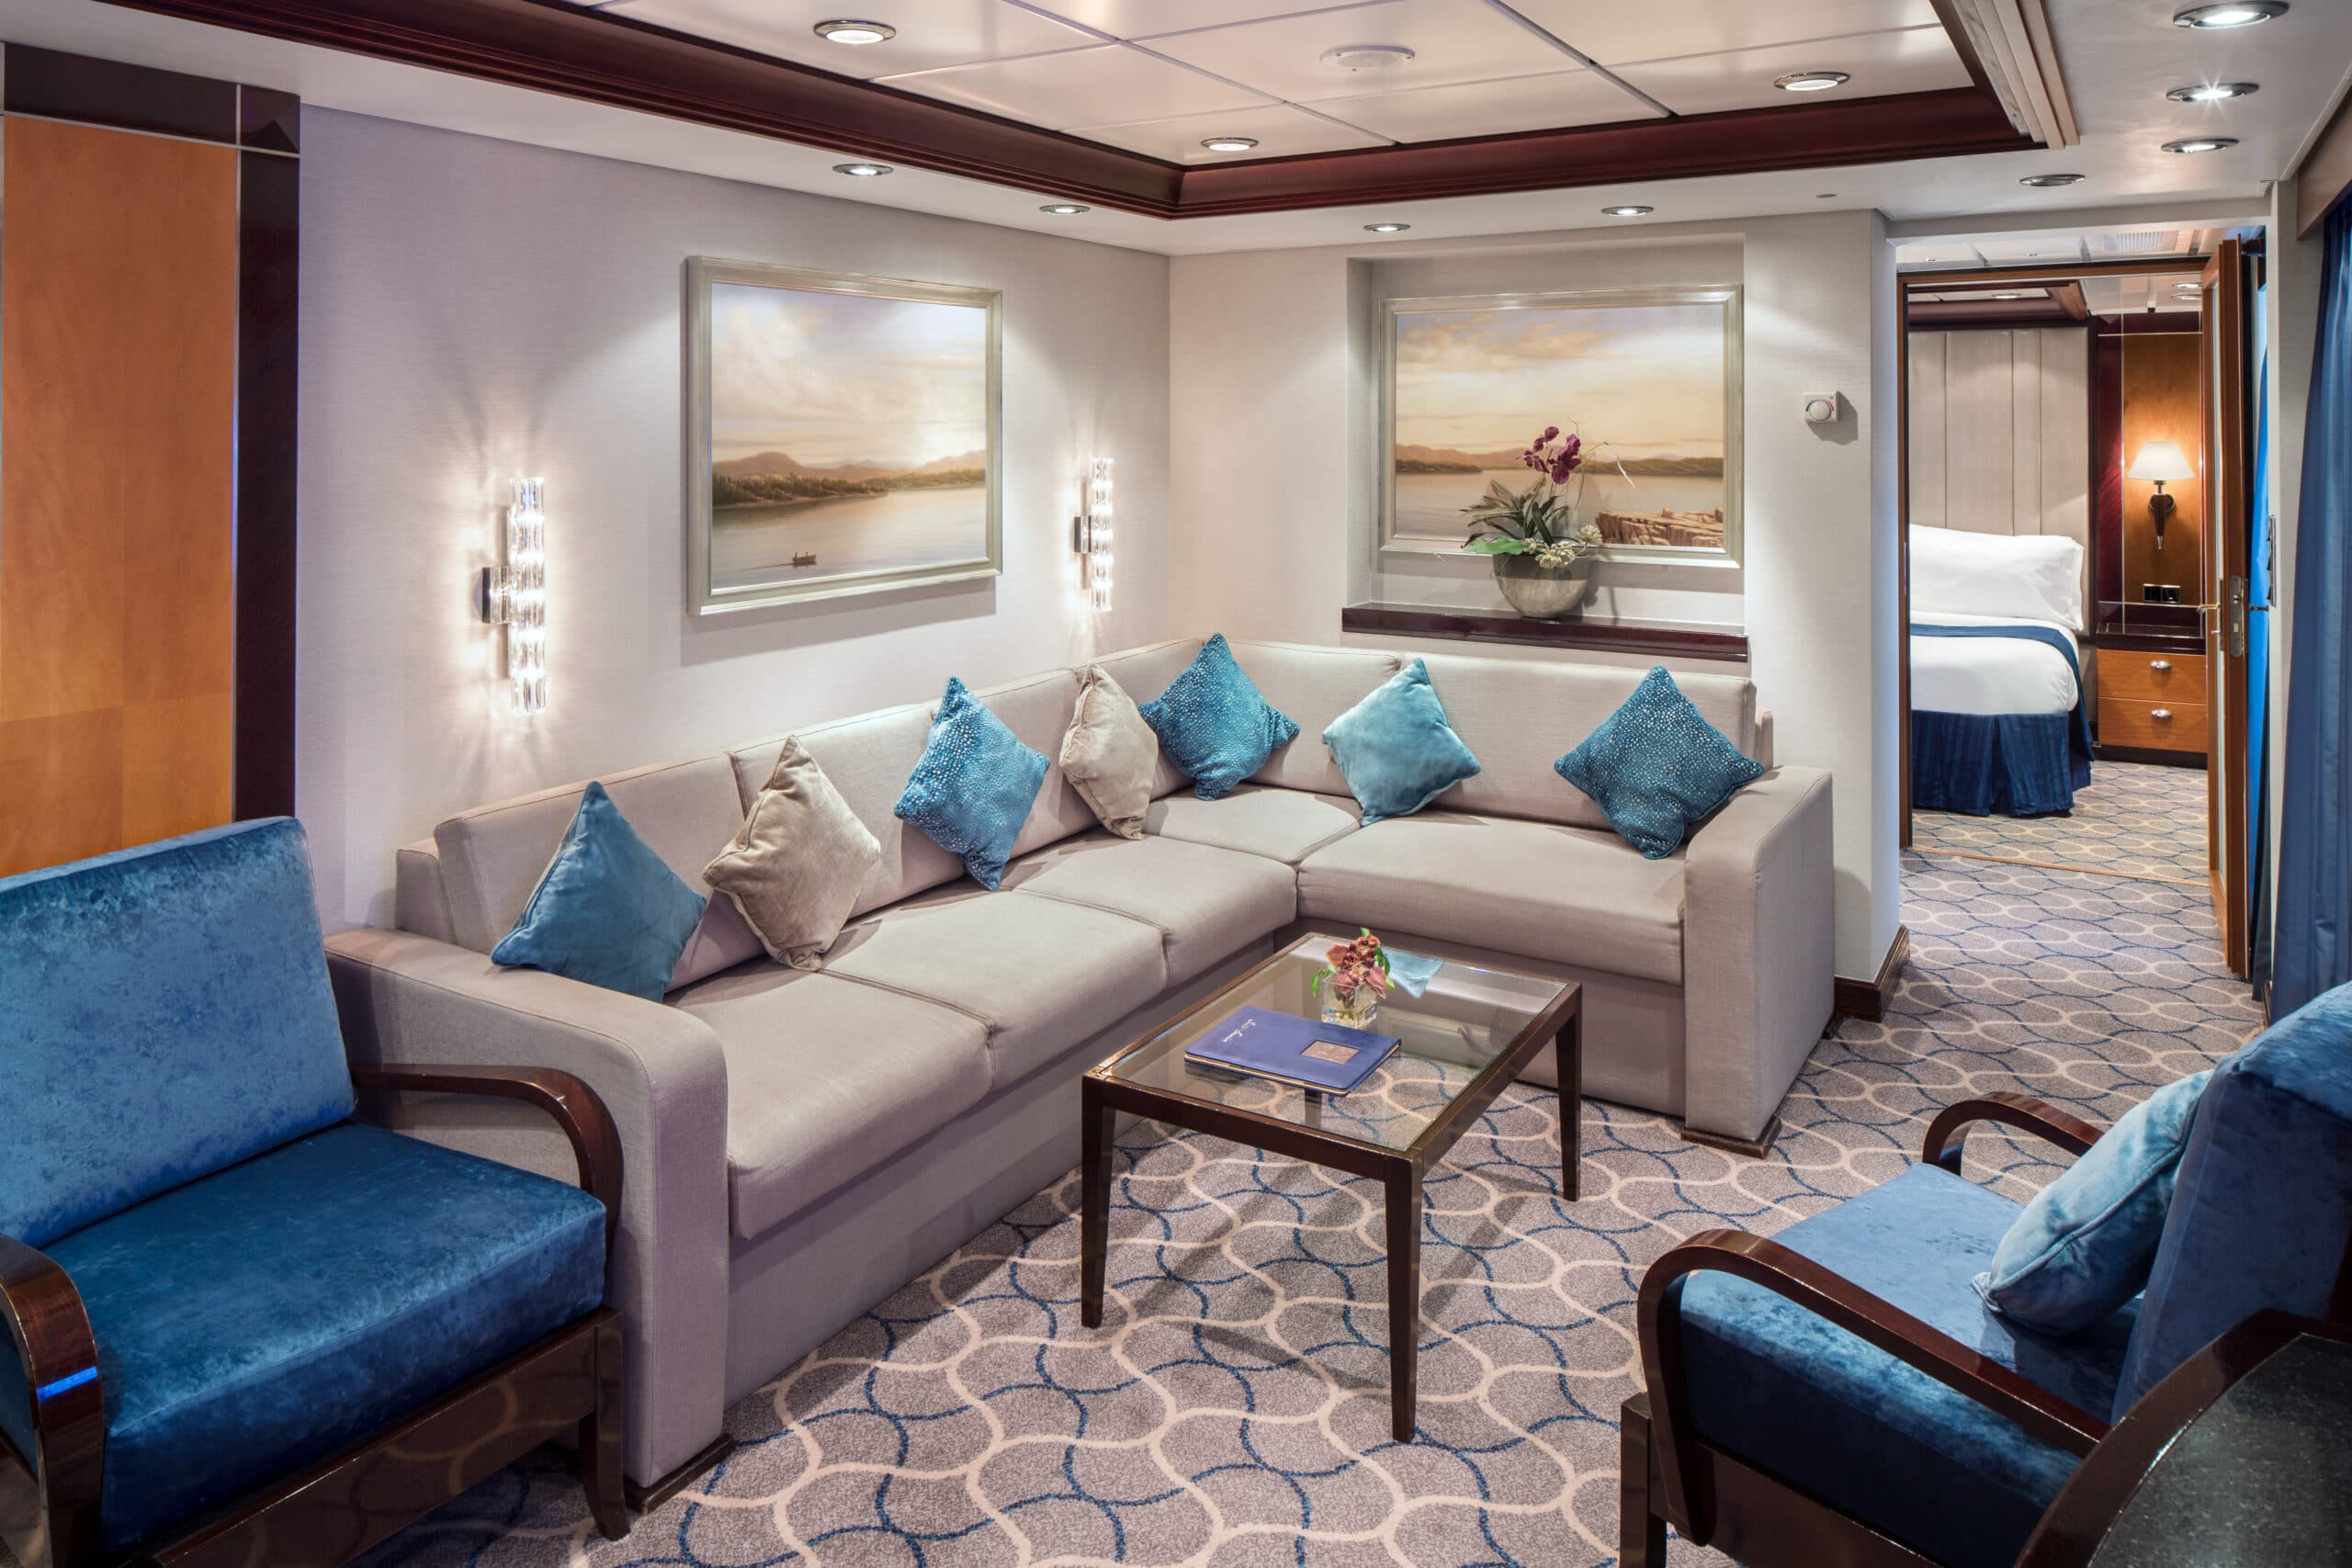 Royal-Caribbean-International-Freedom-of-the-Seas-Liberty-of-the-Seas-schip-cruiseschip-categorie-VS-Villa-Suite